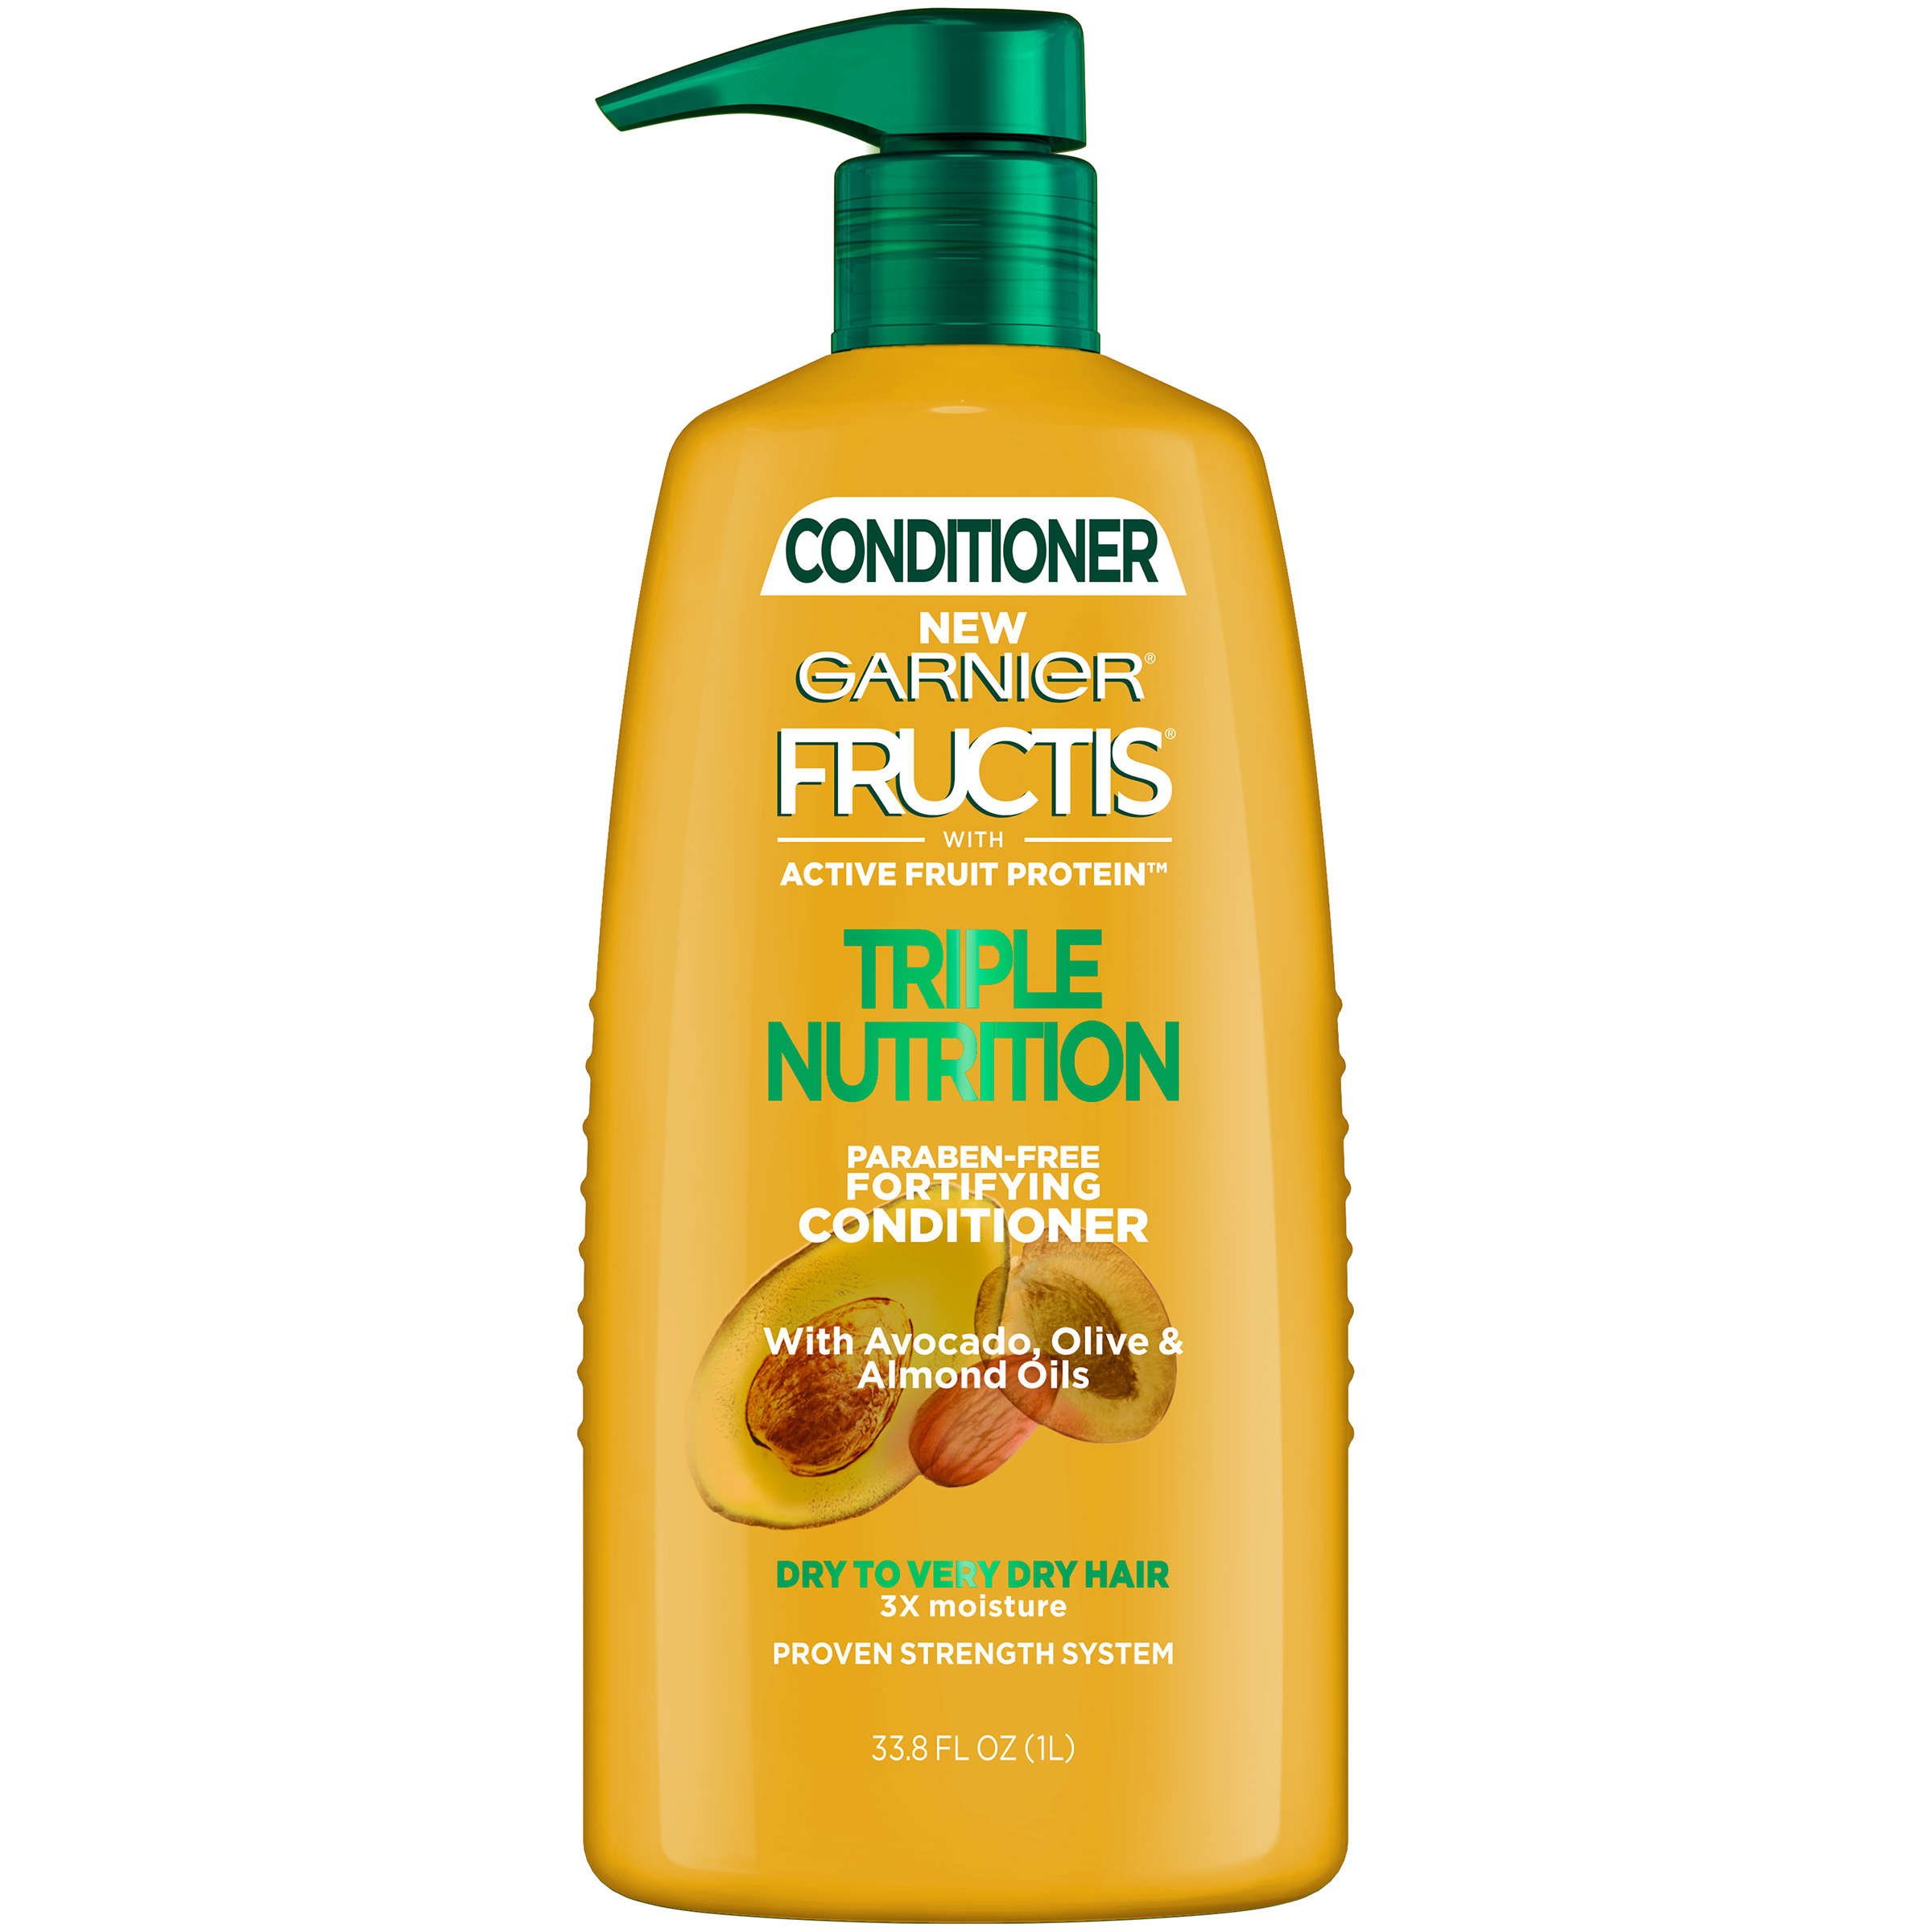 Garnier Fructis Triple Nutrition Conditioner 33.8 FL OZ